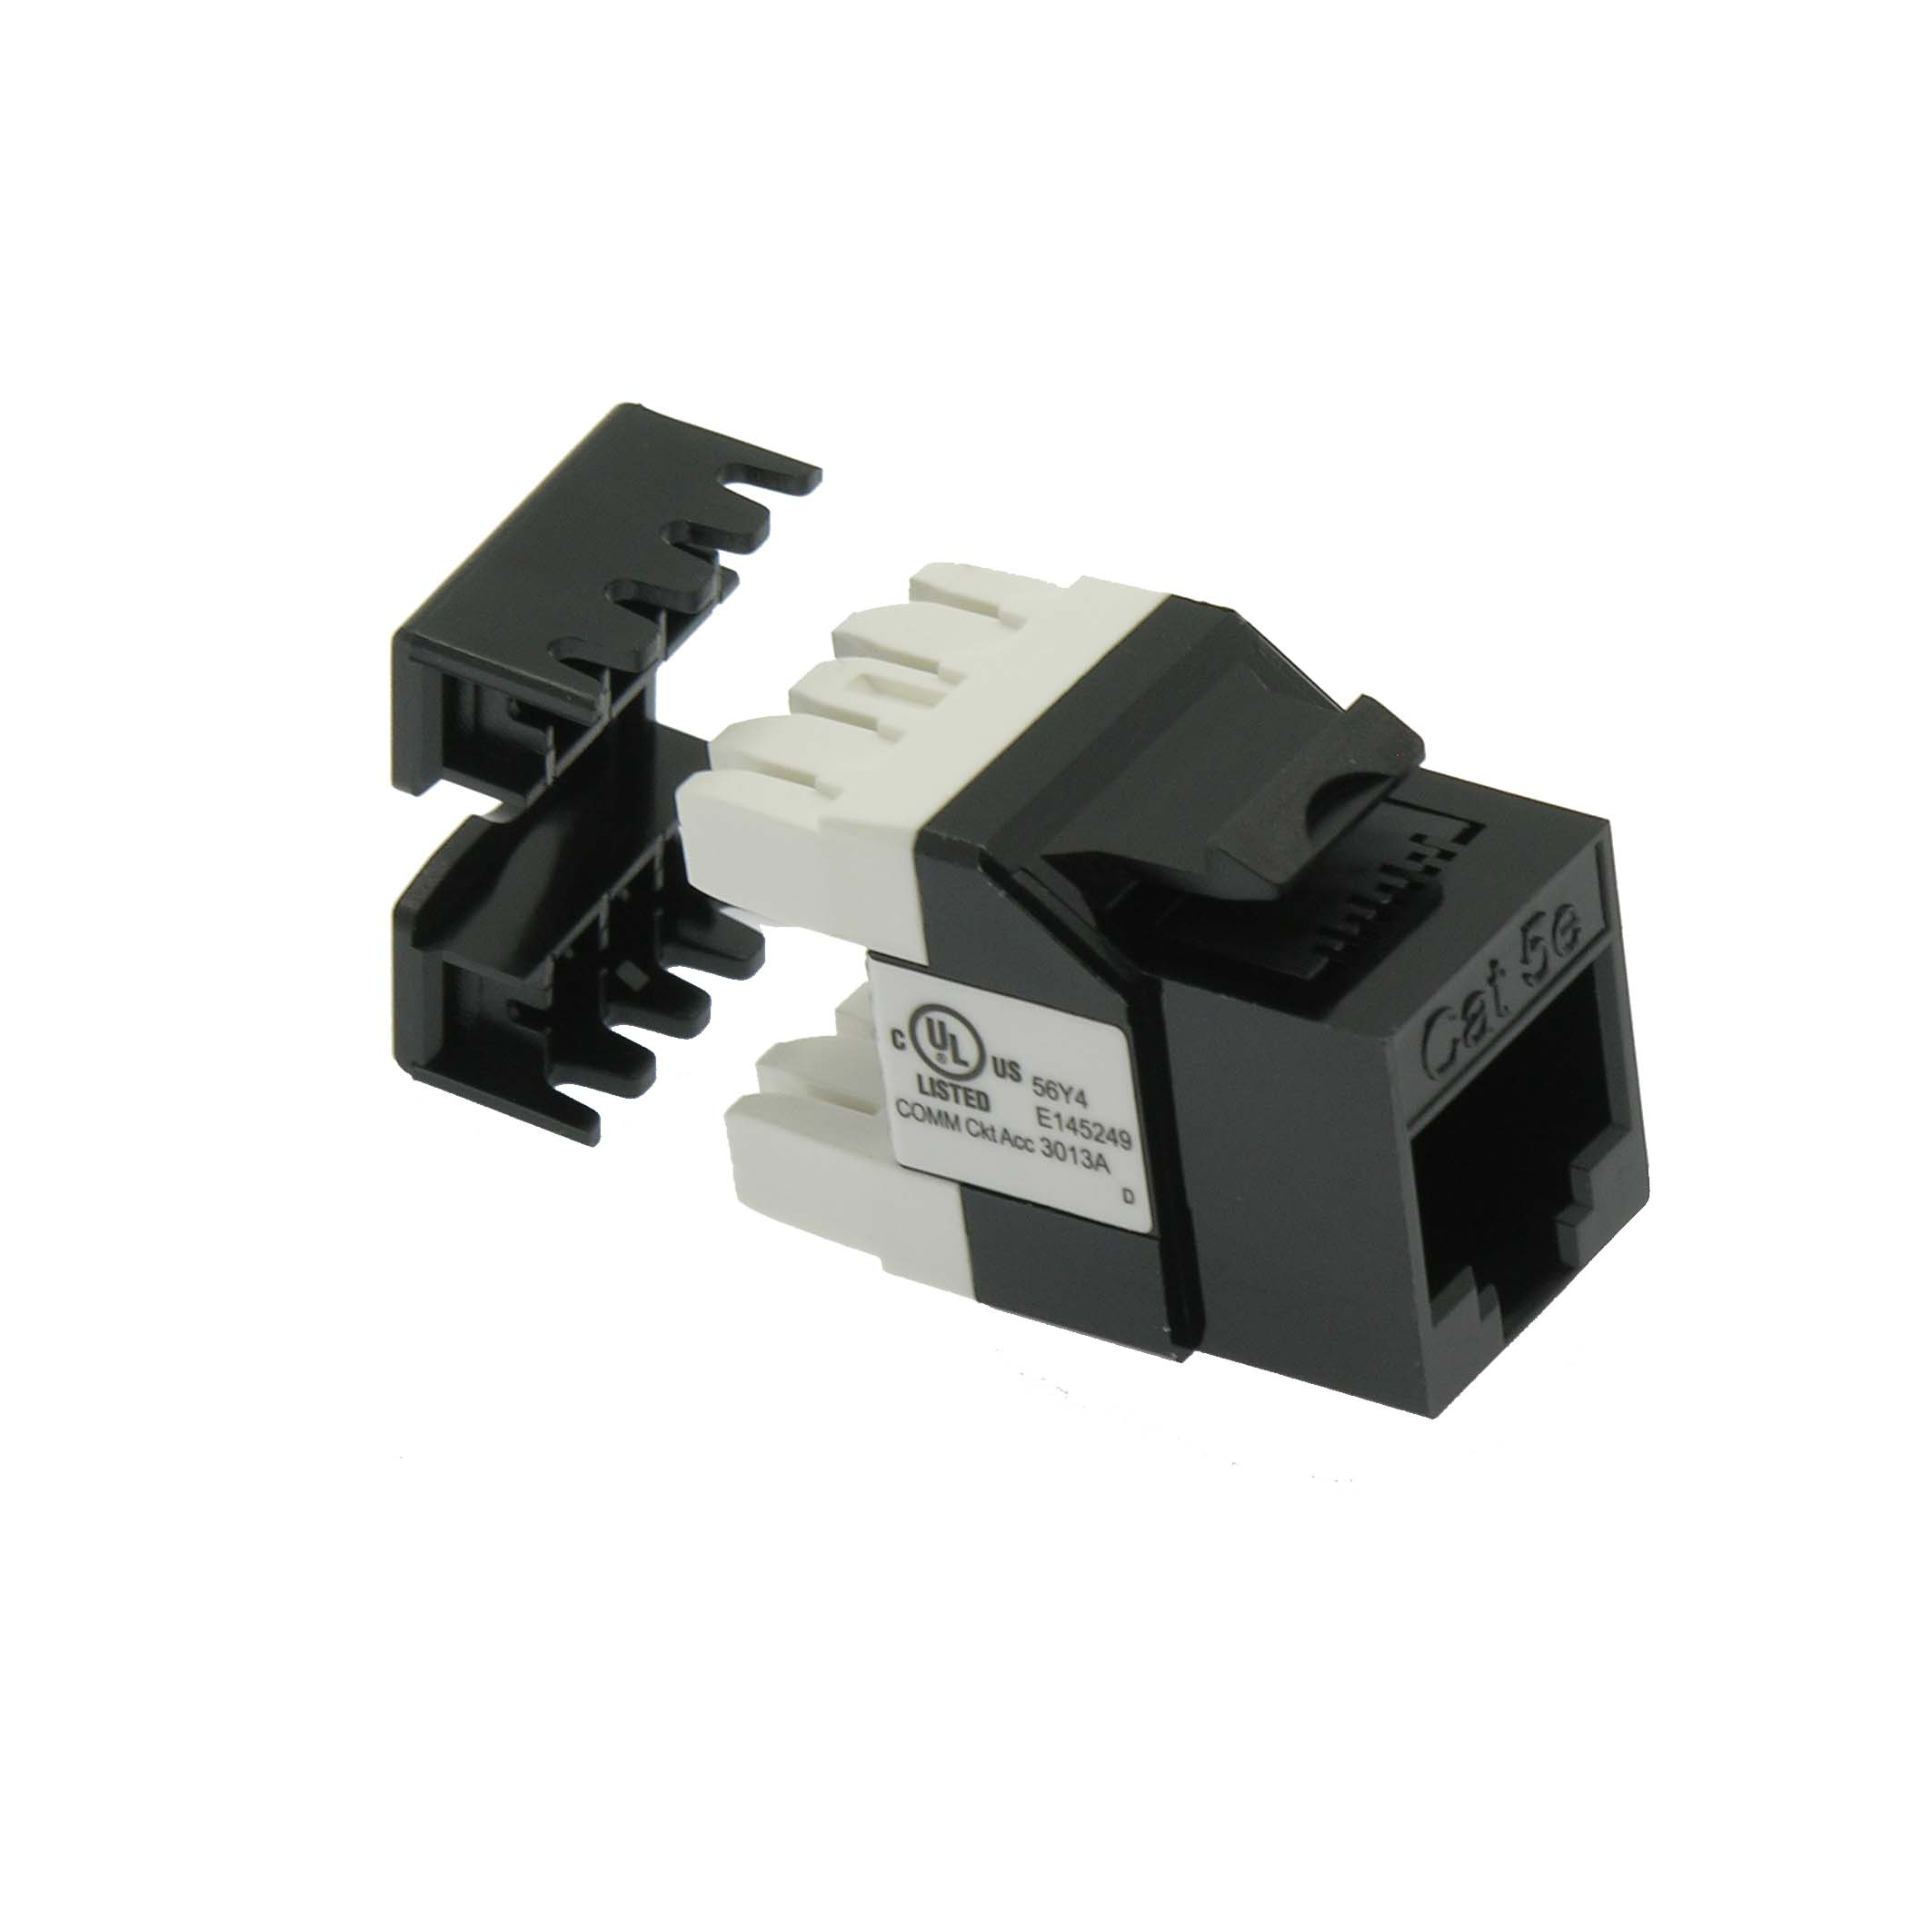 Cat.5E RJ45 110 Type 180° Keystone Jack Black